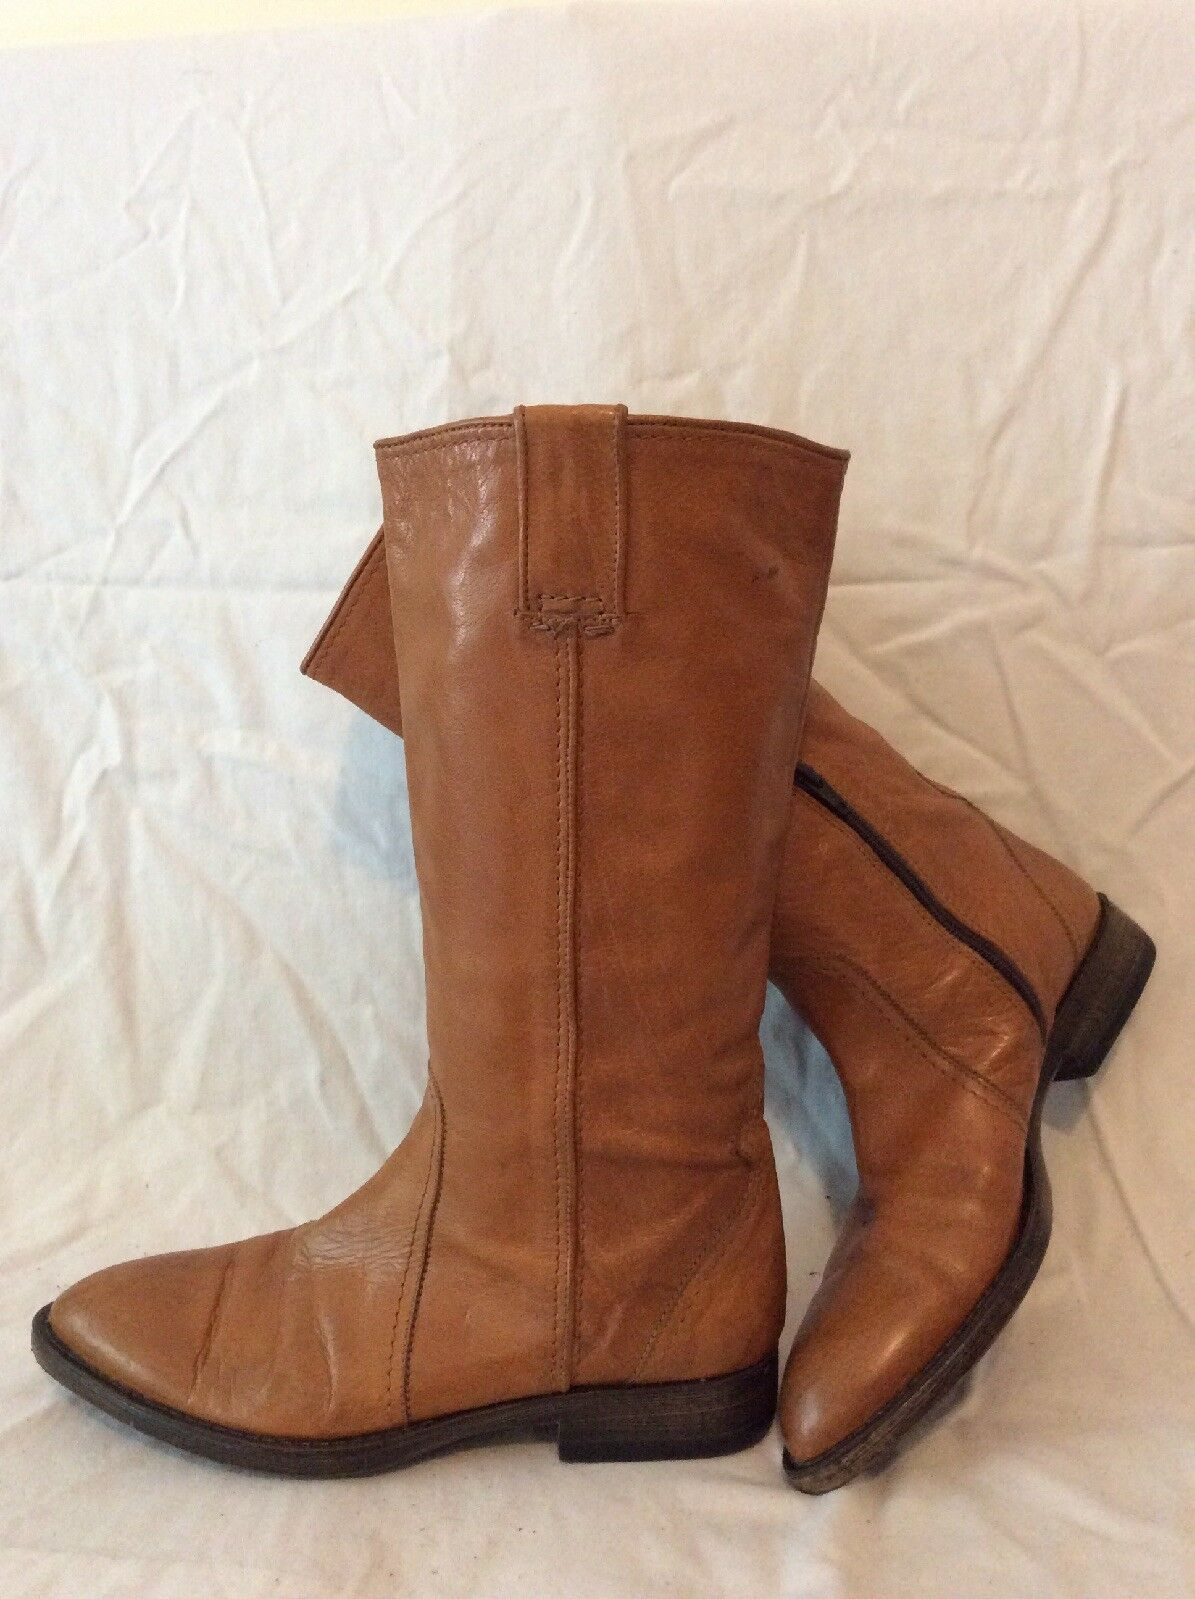 Pons Quintana Brown Knee High Leather Boots Size 38